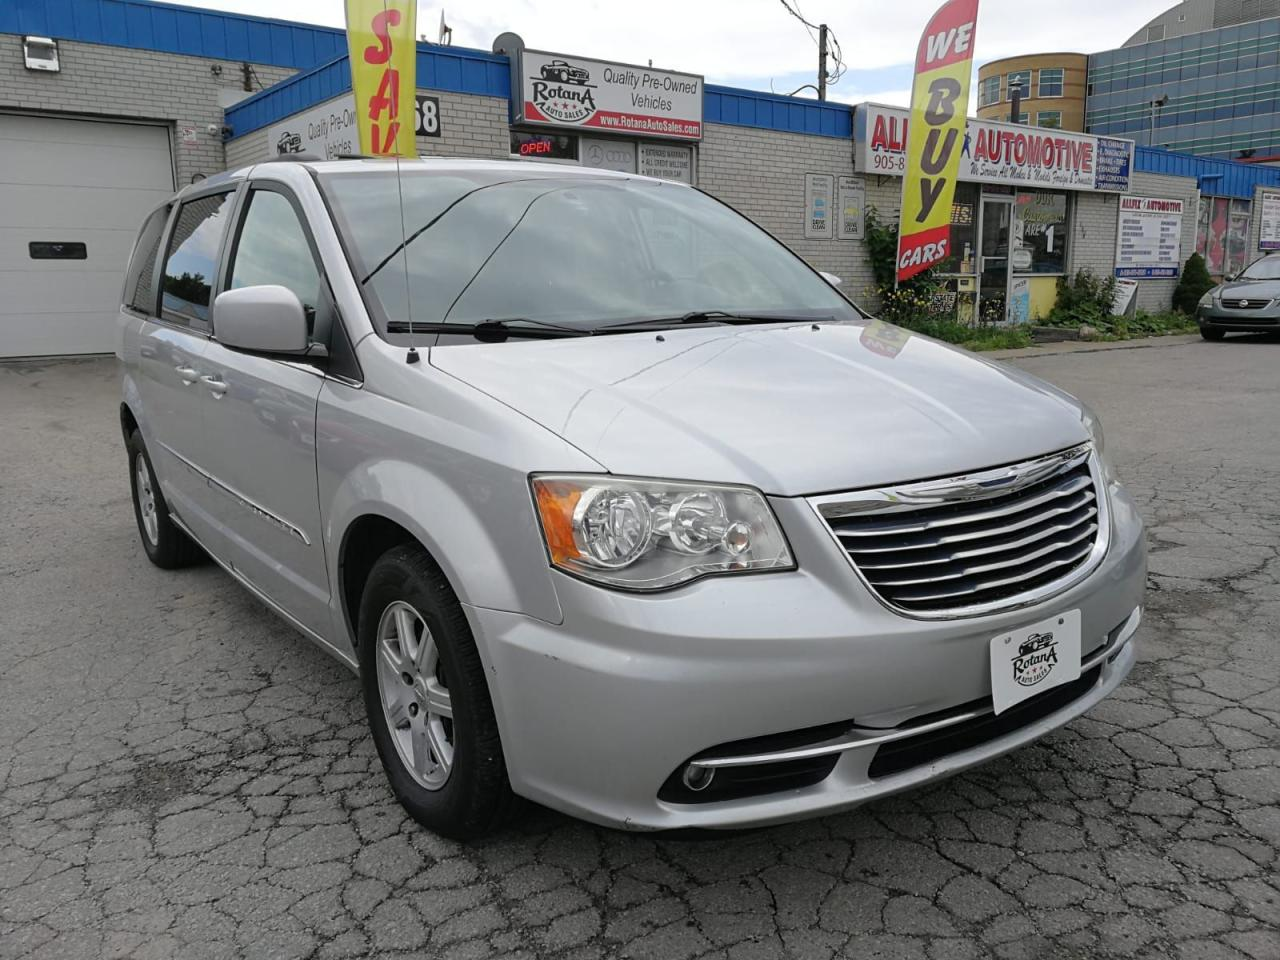 Town And Country Auto Sales >> 2012 Chrysler Town Amp Country Rotana Auto Sales